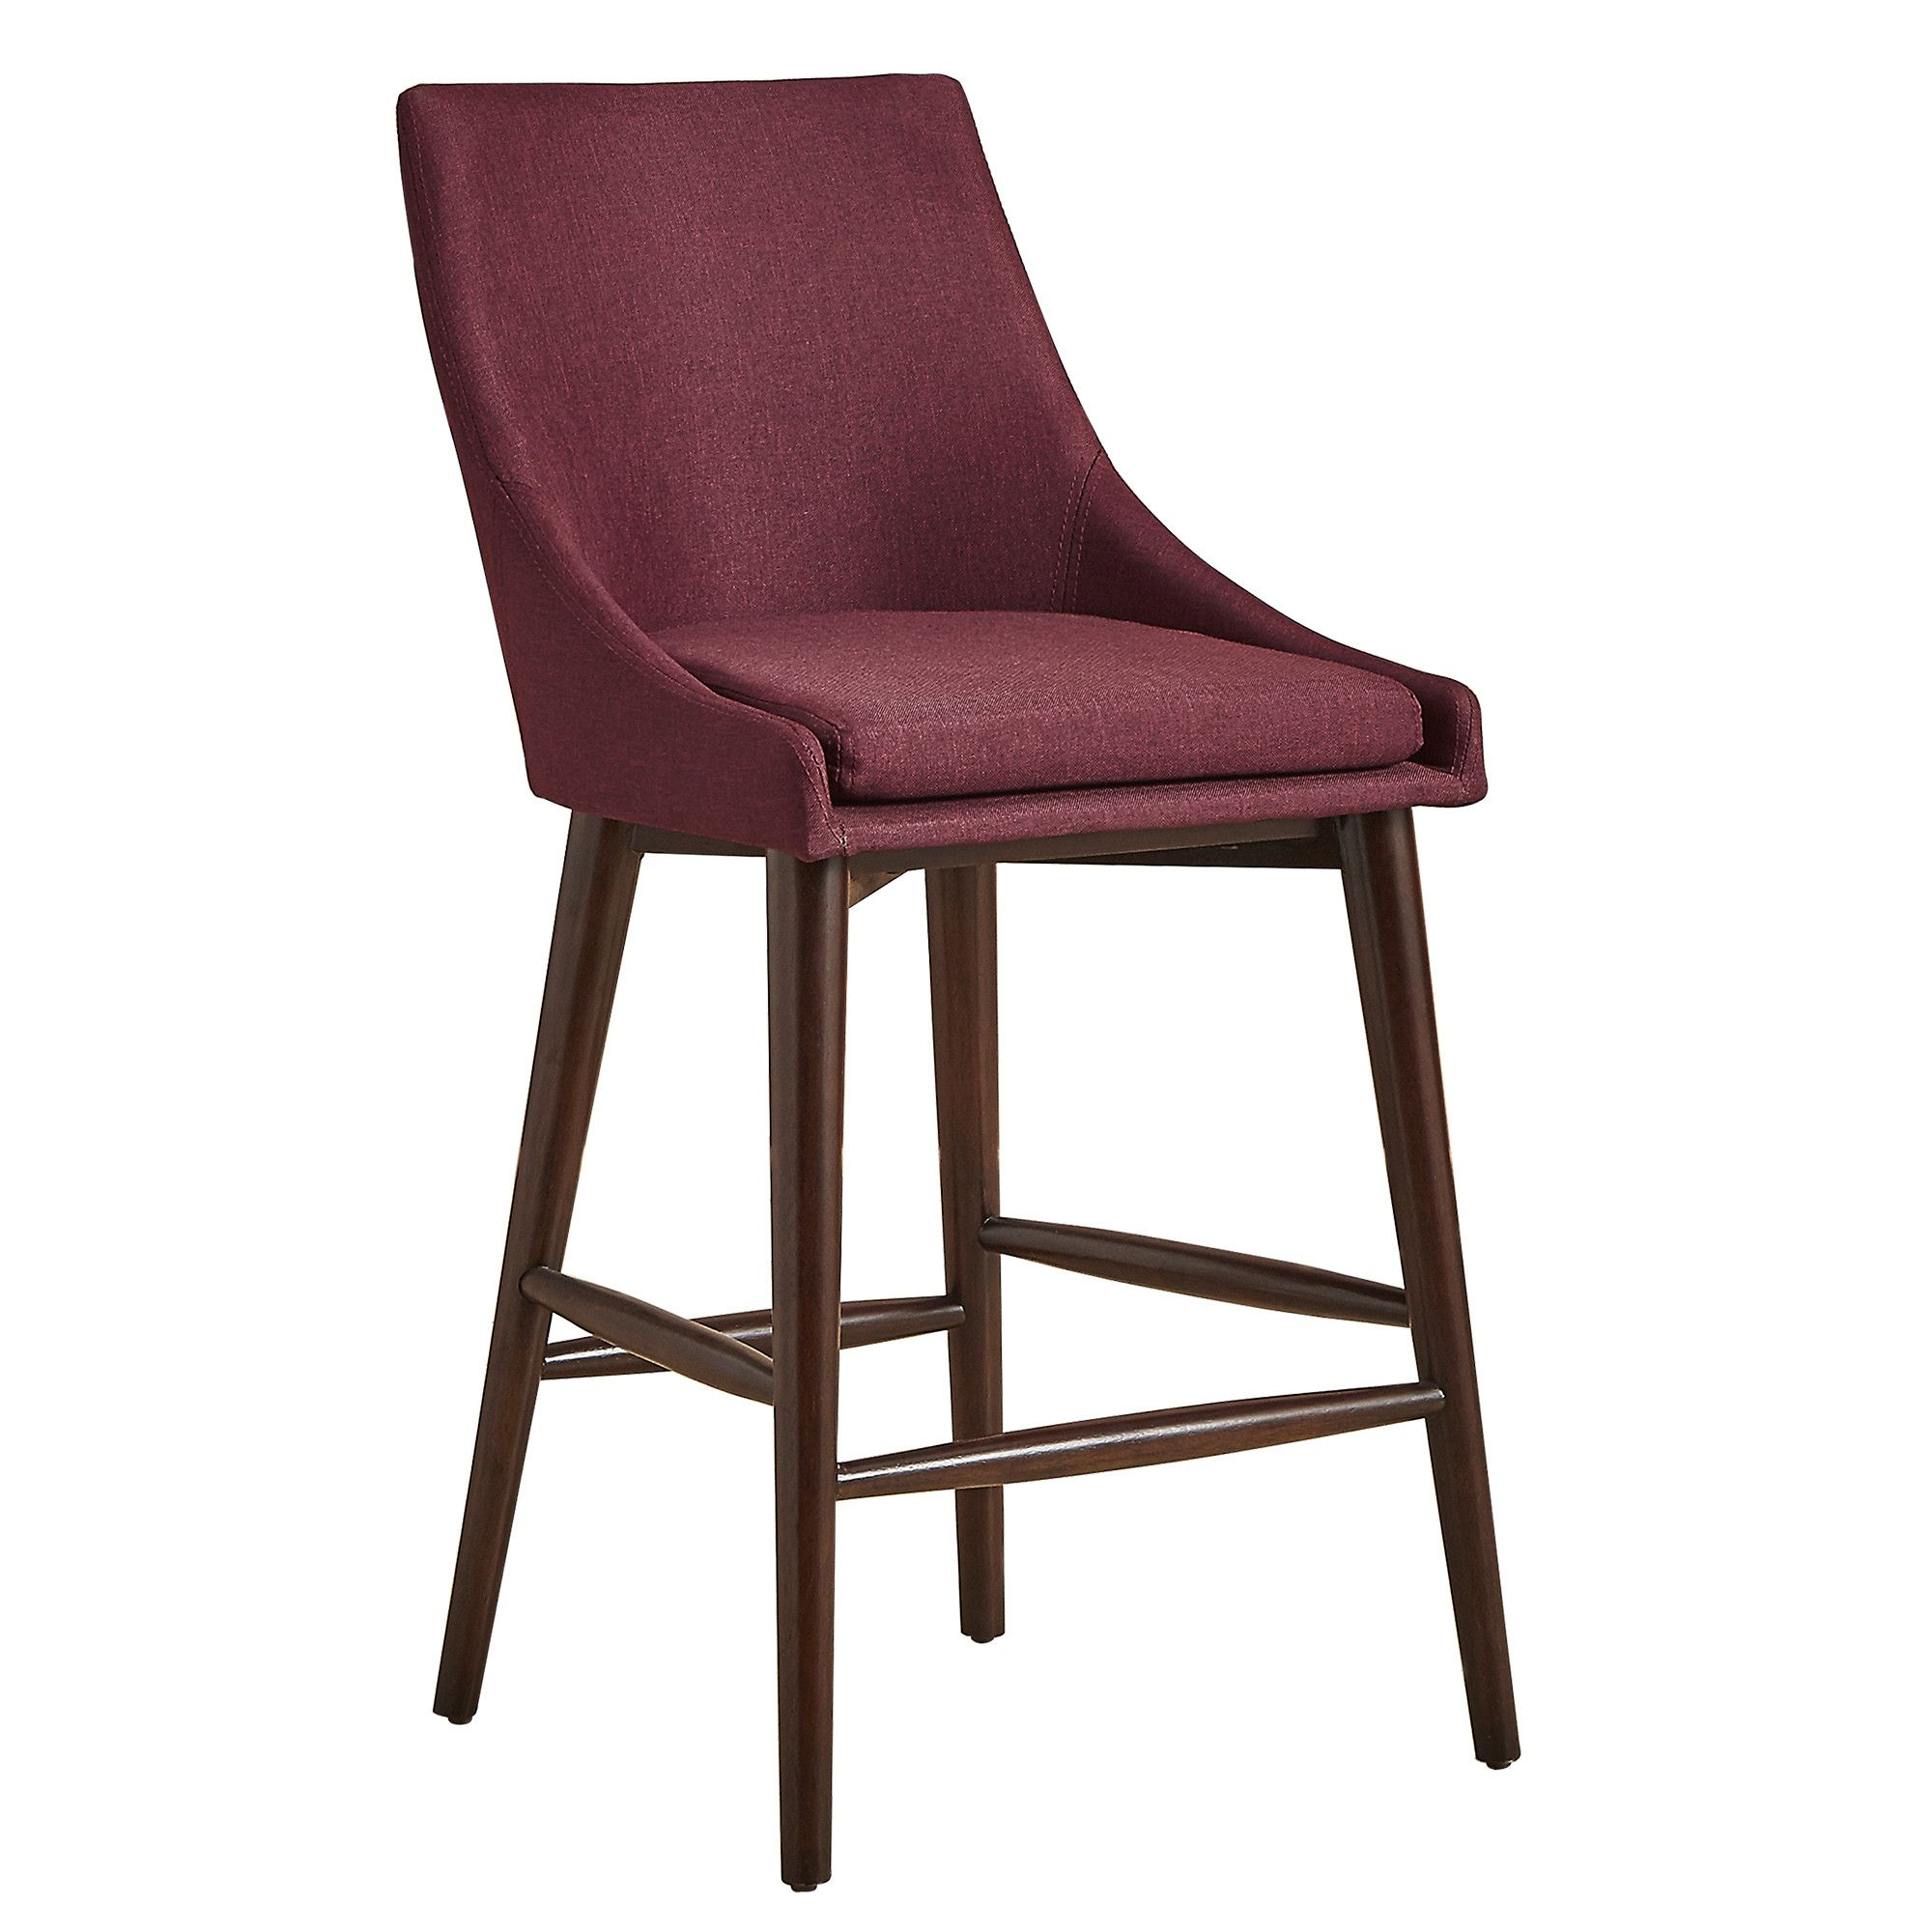 Incroyable Blaisdell Counter Height Arm Chair